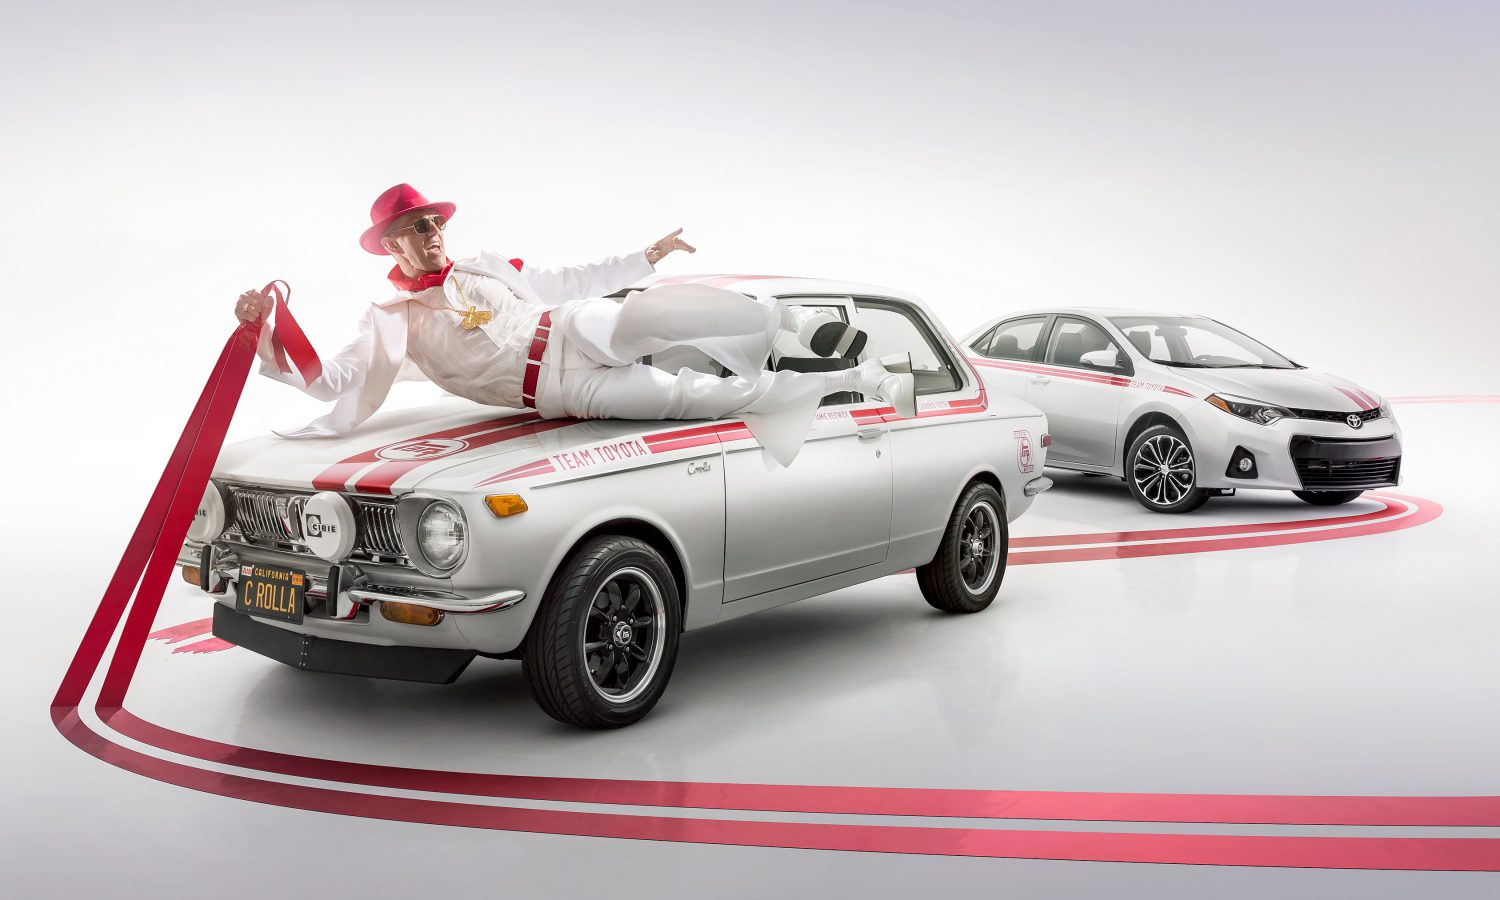 Toyota Corolla Commemorates 50 Years with Historical Display at SEMA 2016